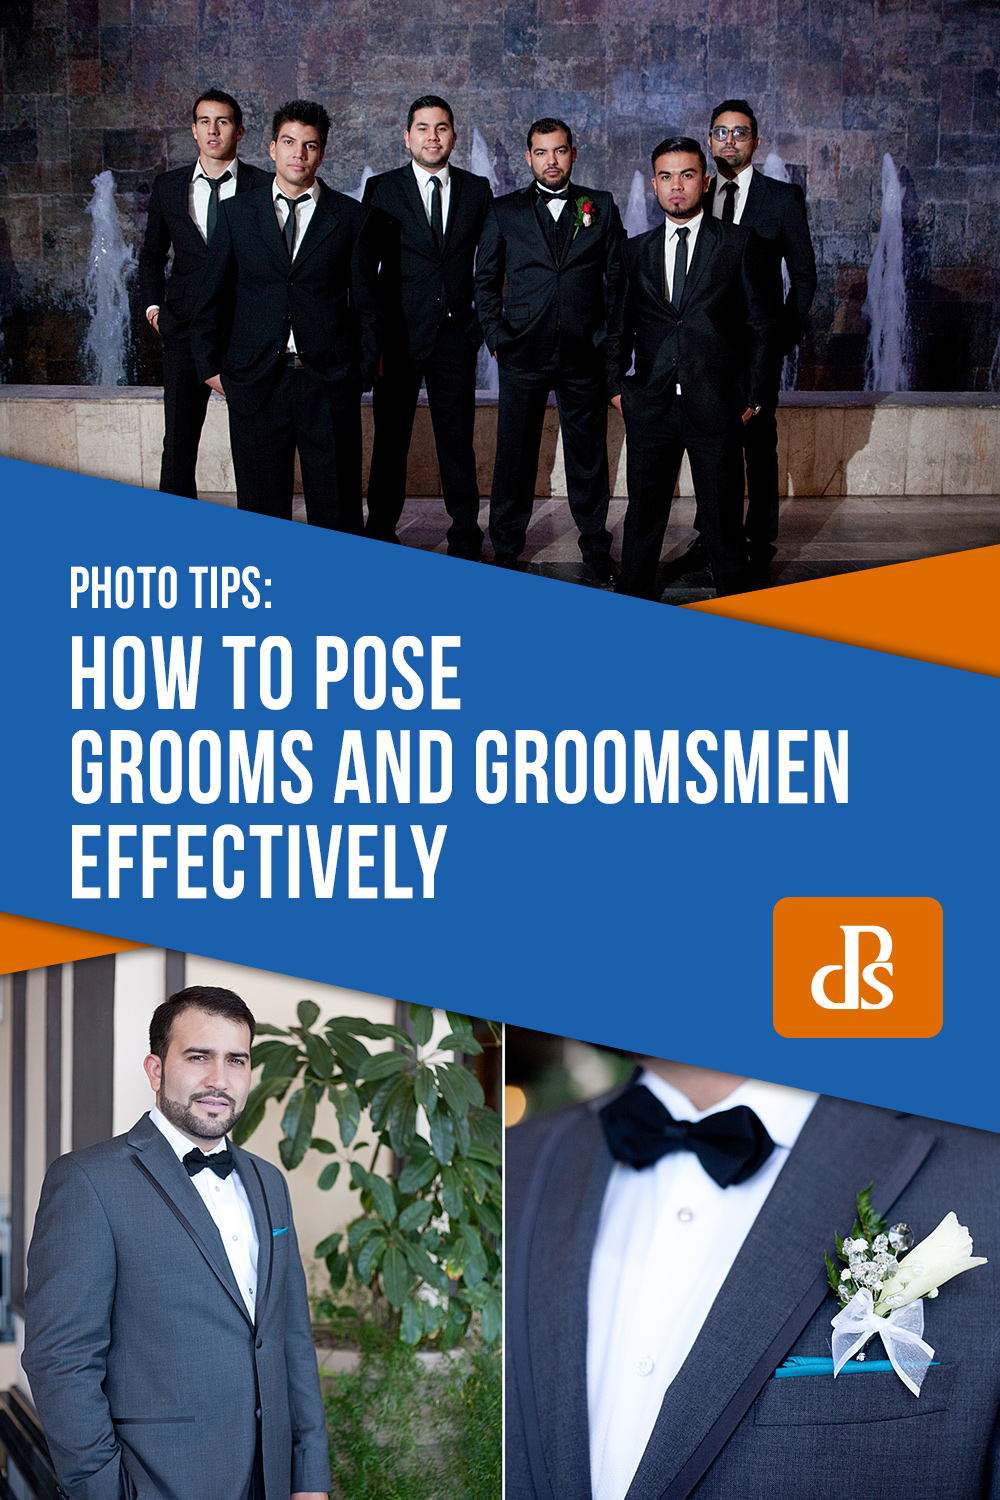 dps-How-to-Pose-Grooms-and-Groomsmen-Effectively